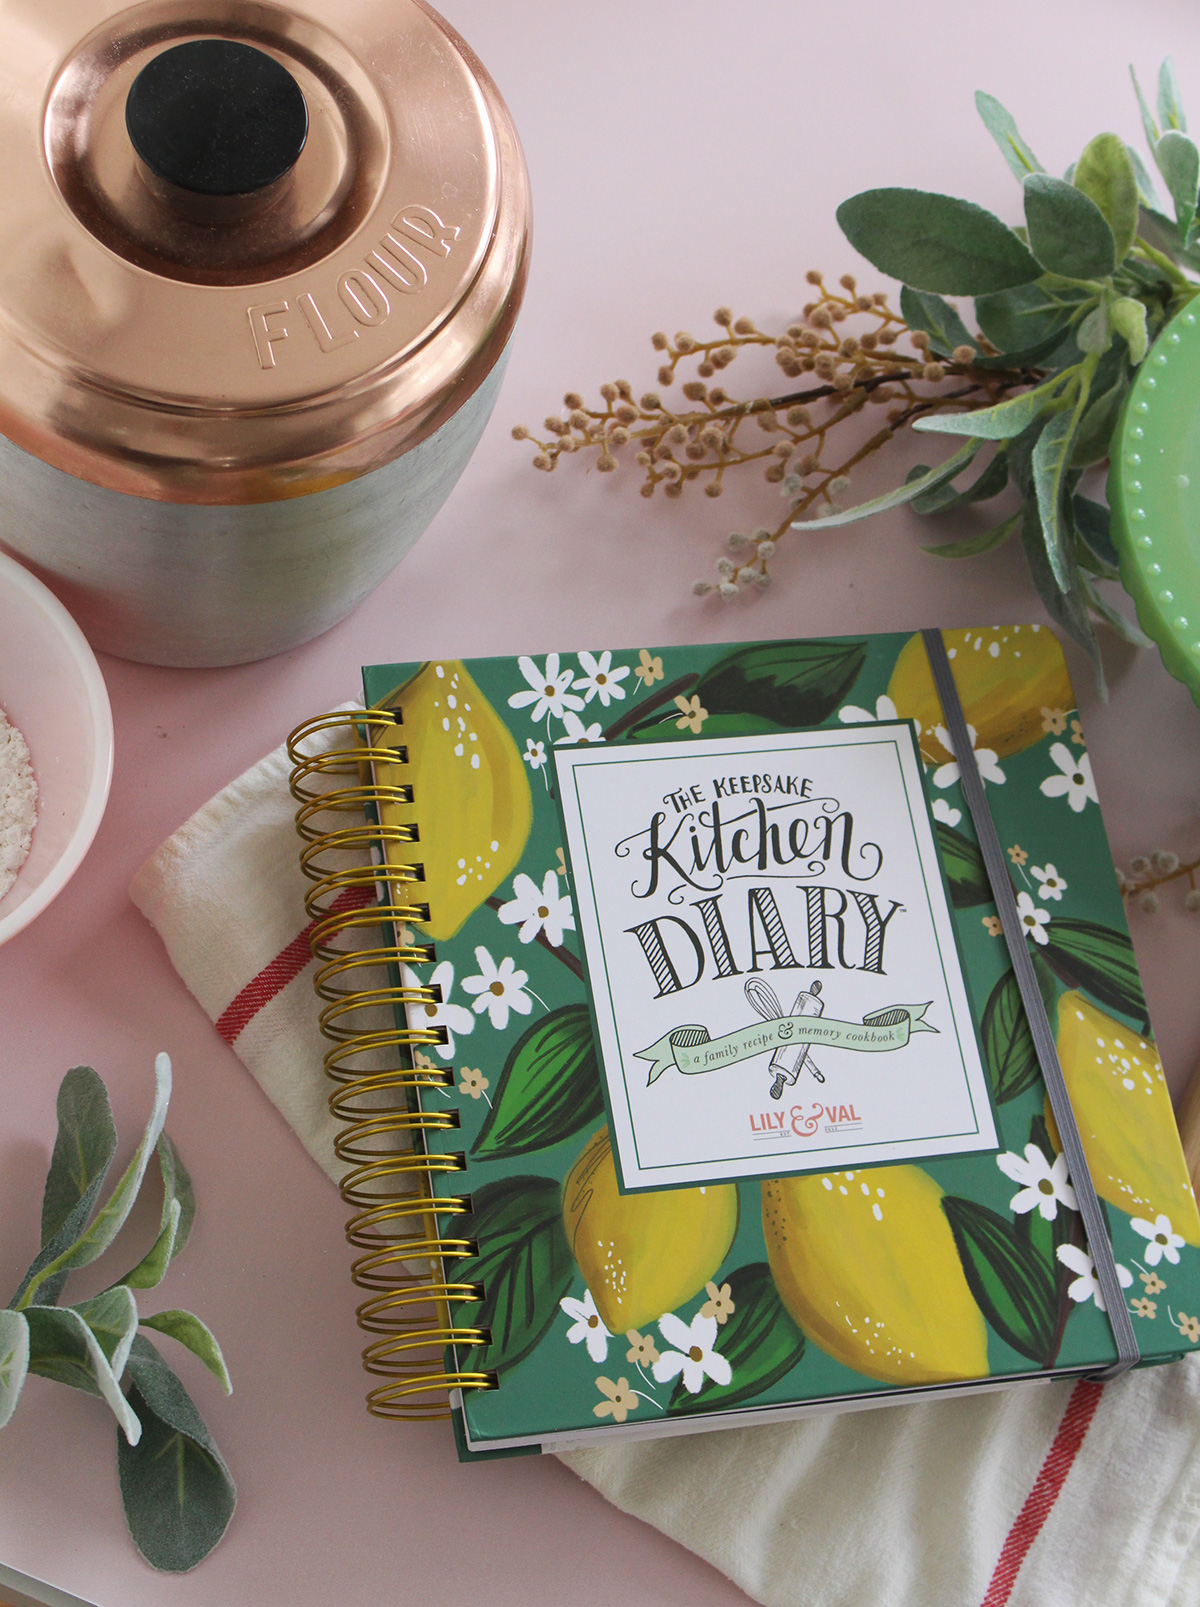 If you're not familiar with The Diary, it's the perfect way to preserve your favorite family recipes and the memories that go with them. This is certainly the perfect time of year to begin yours as many cherished recipes are sure to be shared!